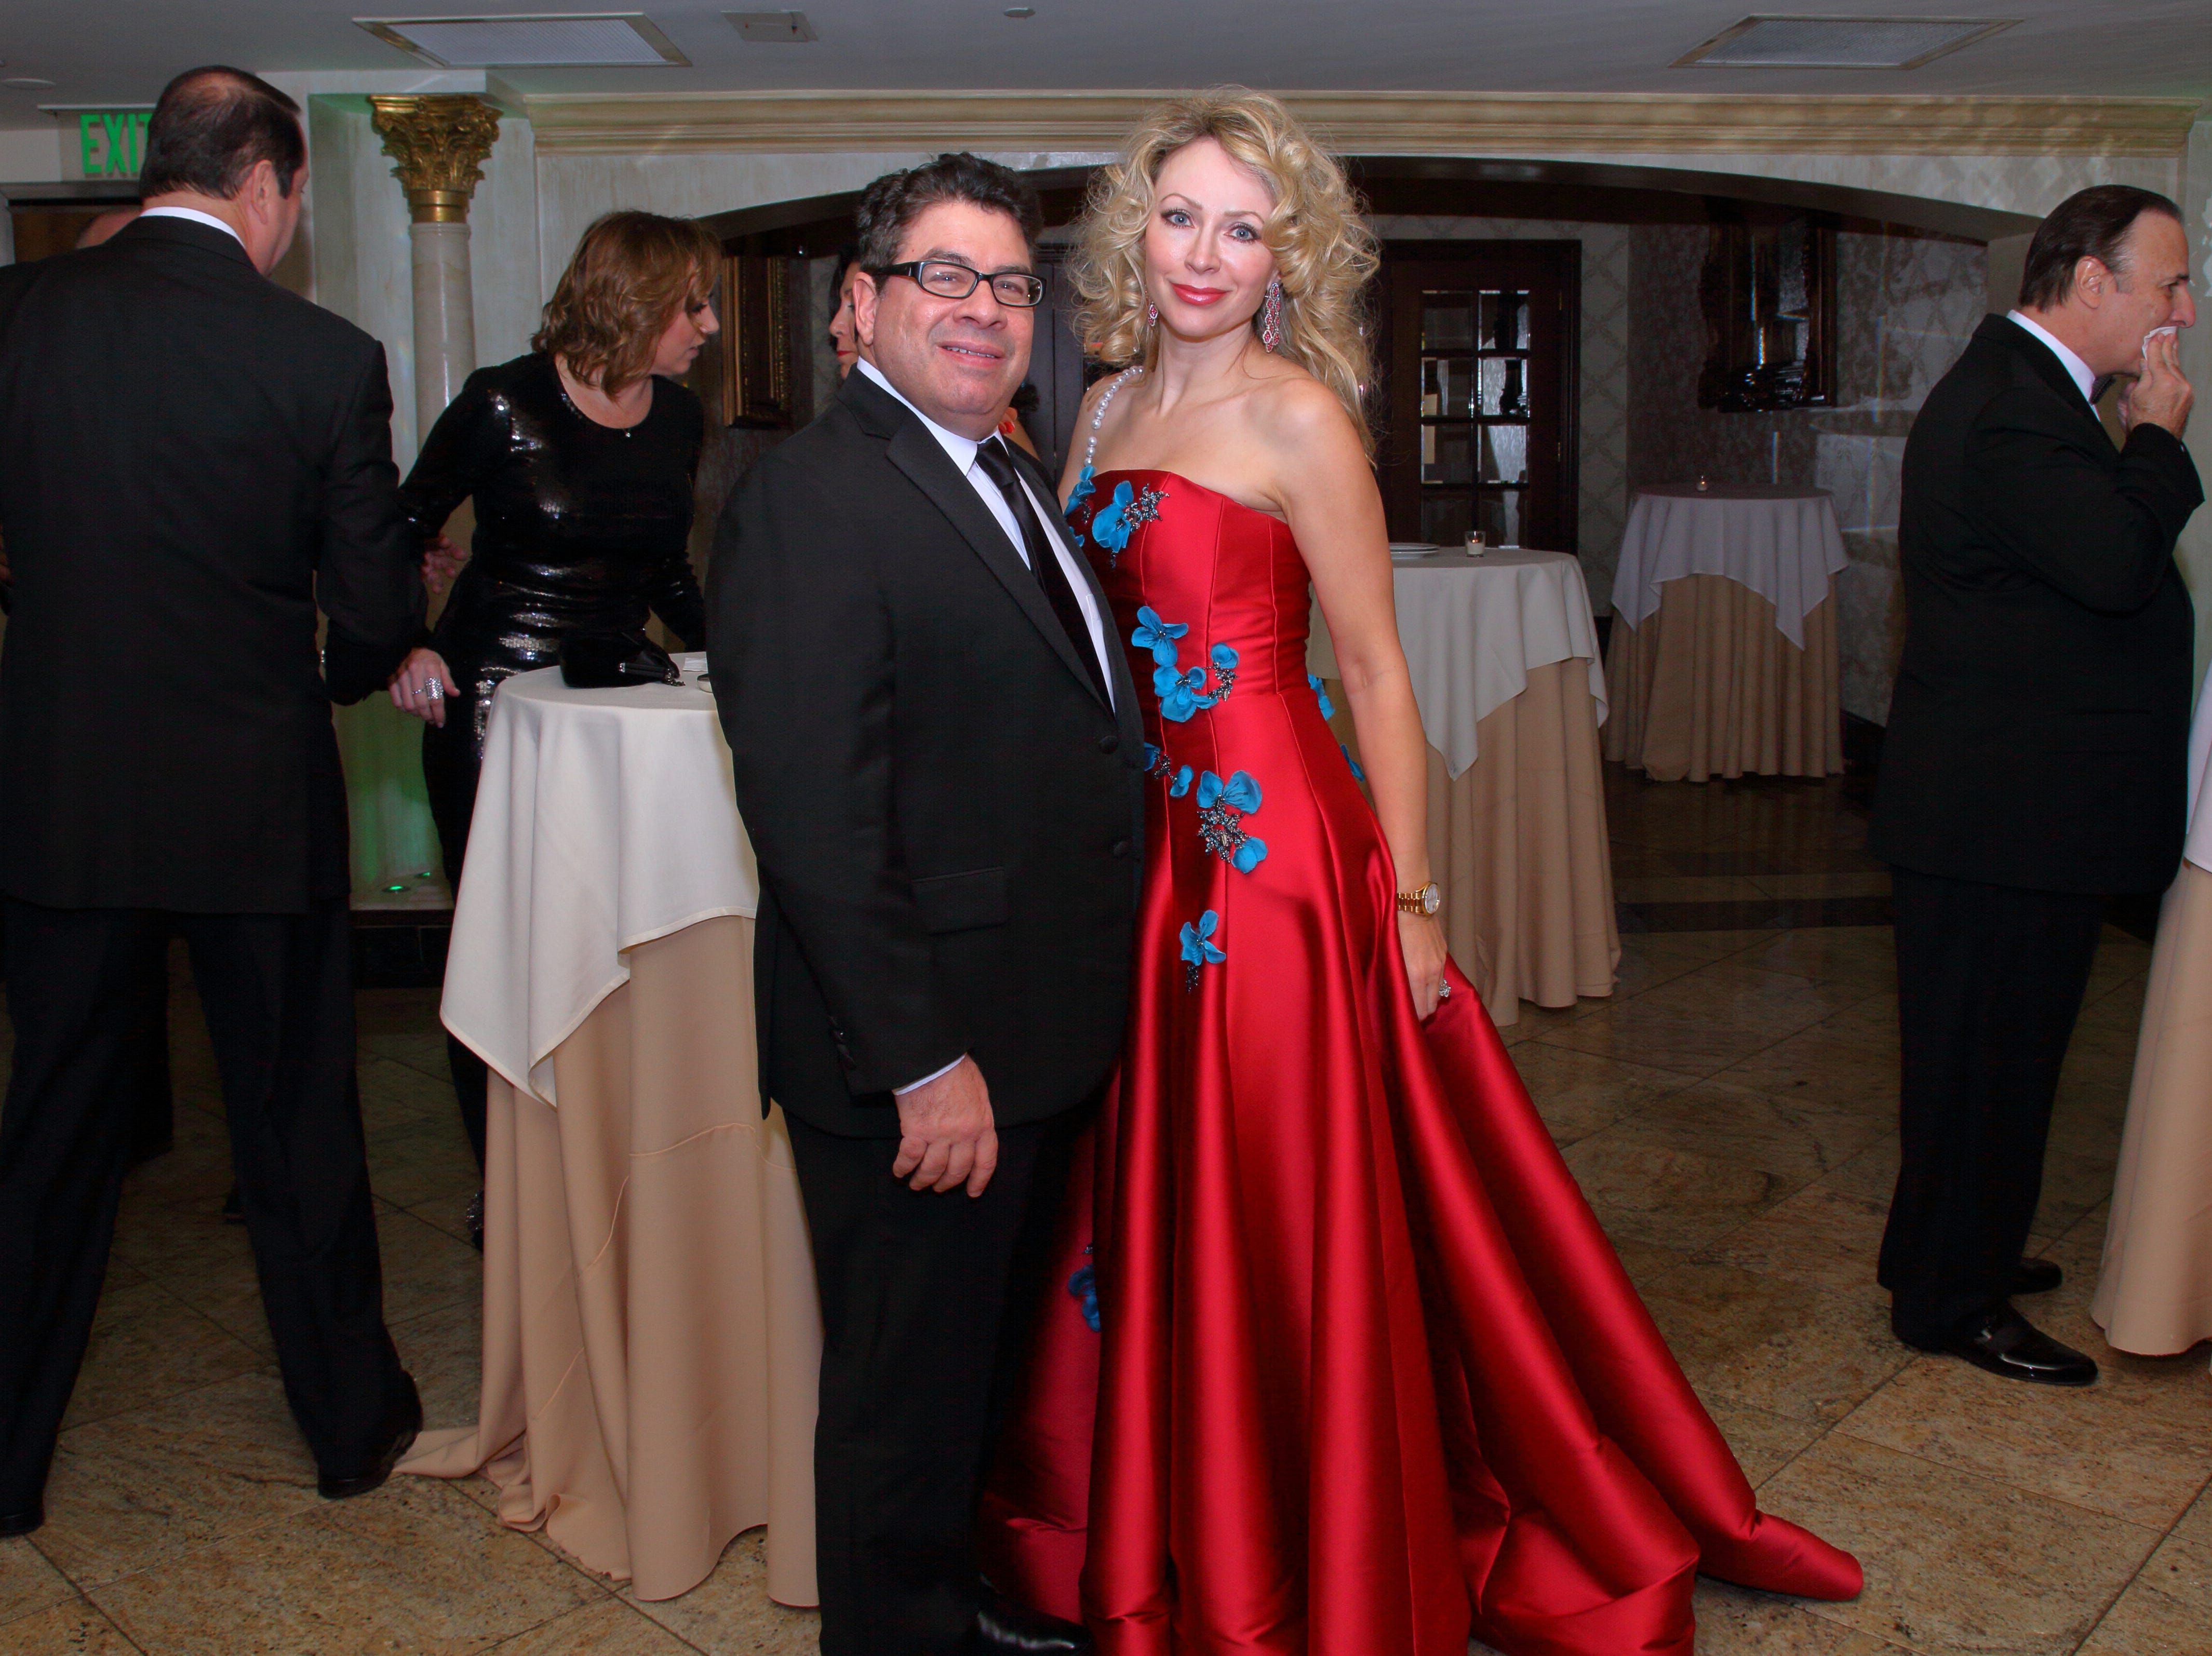 Dr. Steven and Olesya Dane. The Saddle River Valley Club held its annual Holiday Gala celebration at Seasons in Washington Township. 11/30/2018